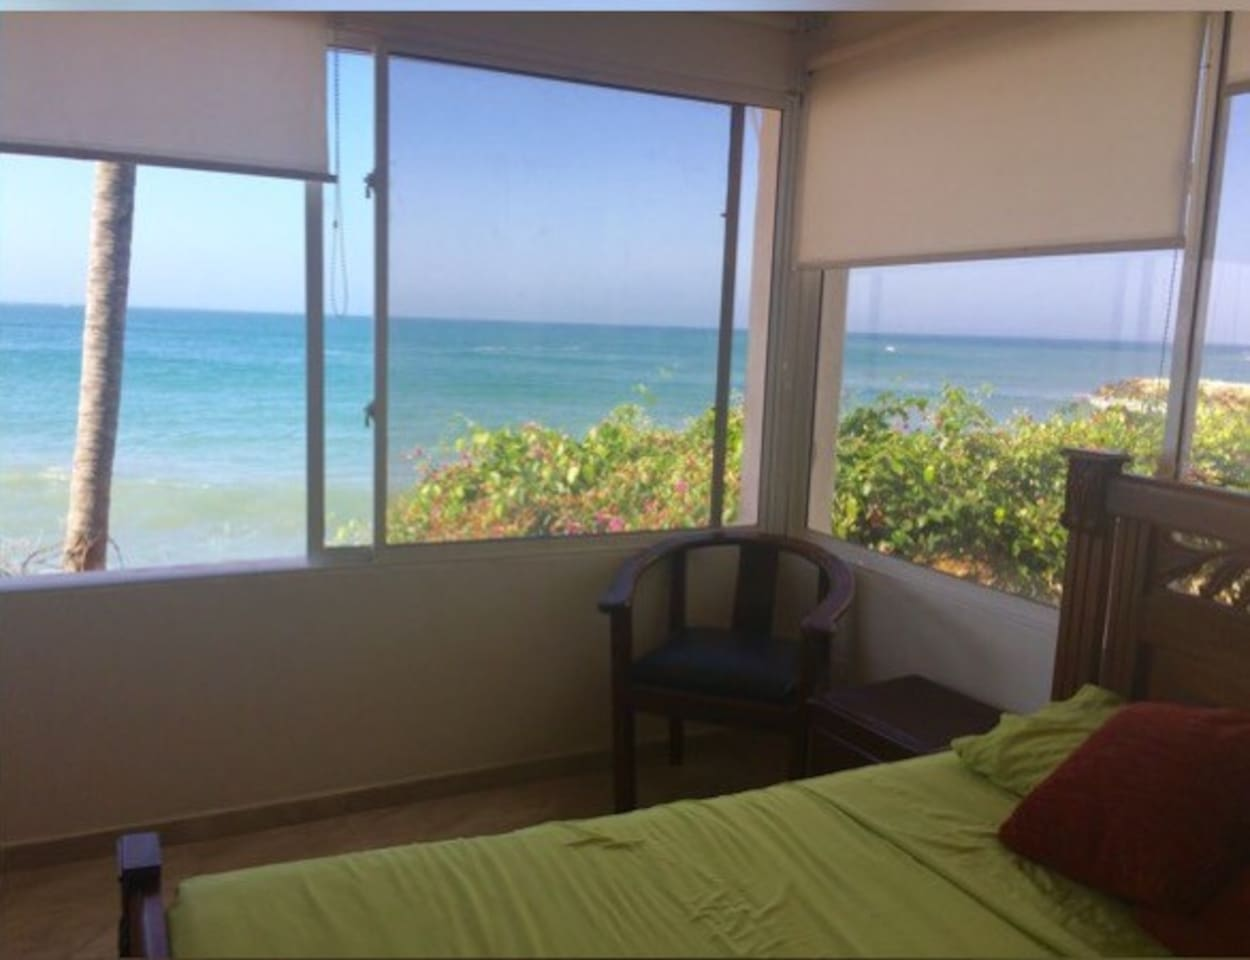 Enjoy The Nice waves of the sea and relaxing view of this room